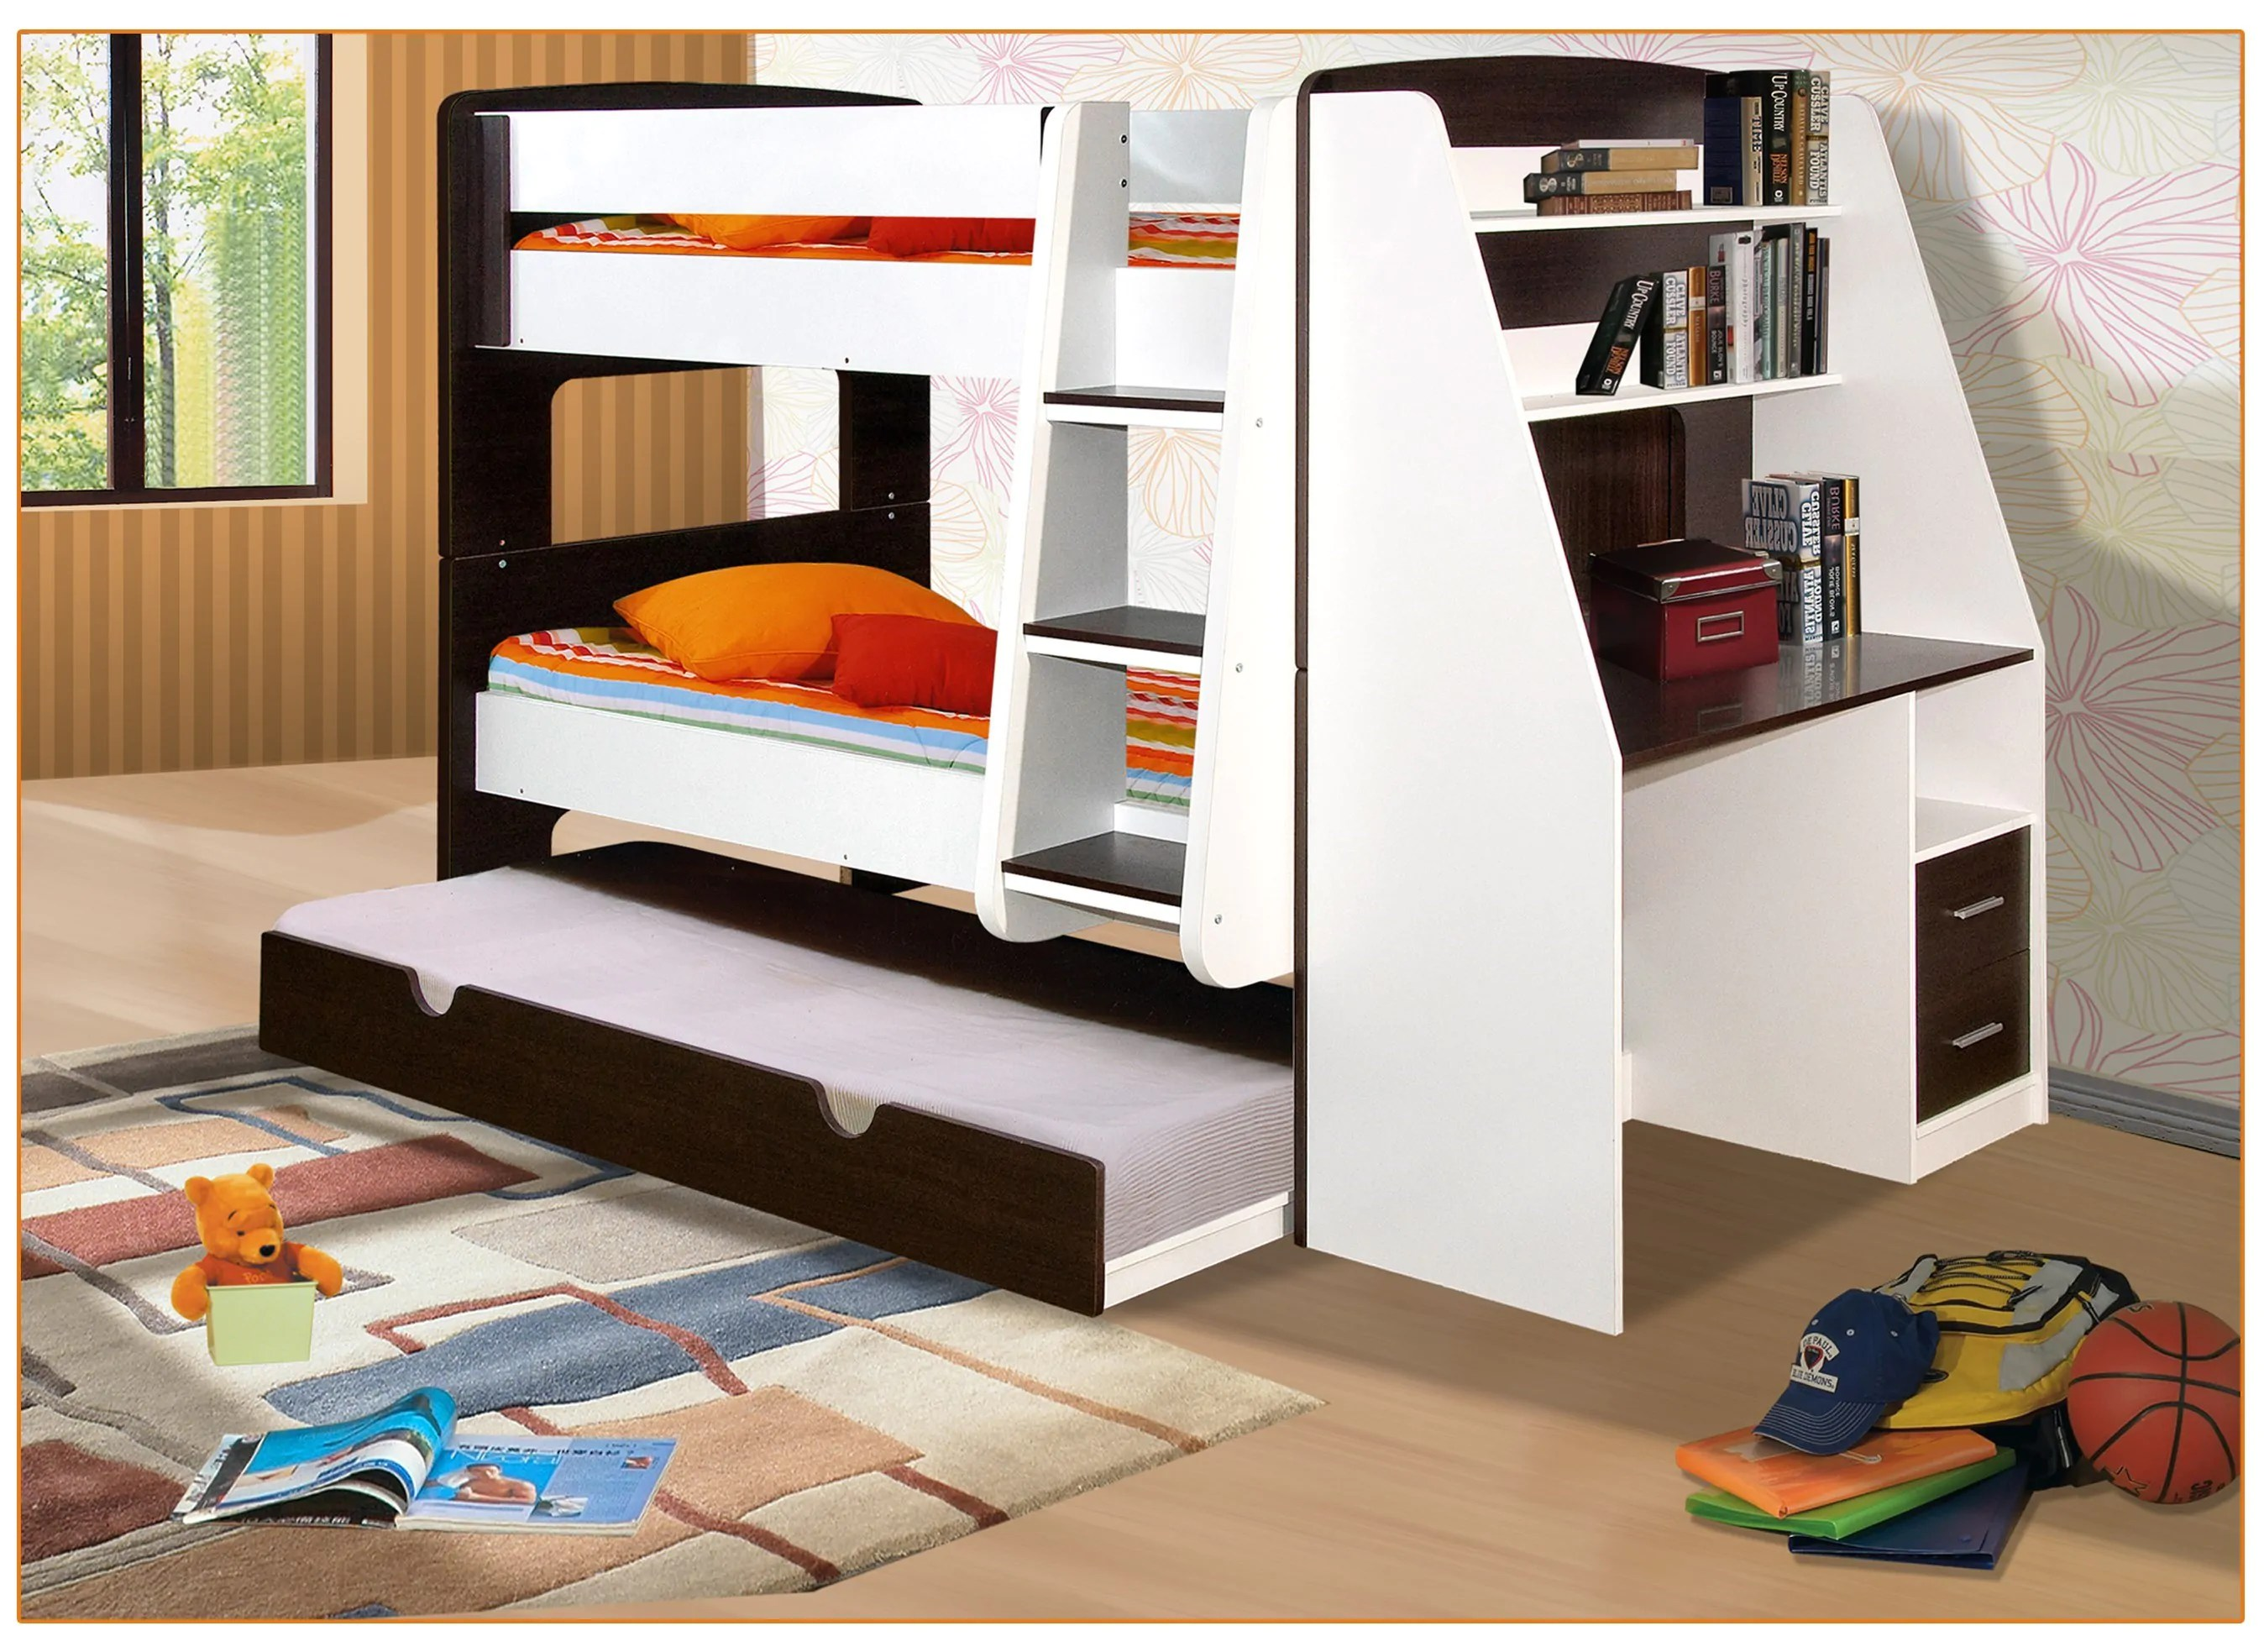 Bed Bunk California Single Bunk Beds With Trundle Bed And Desk